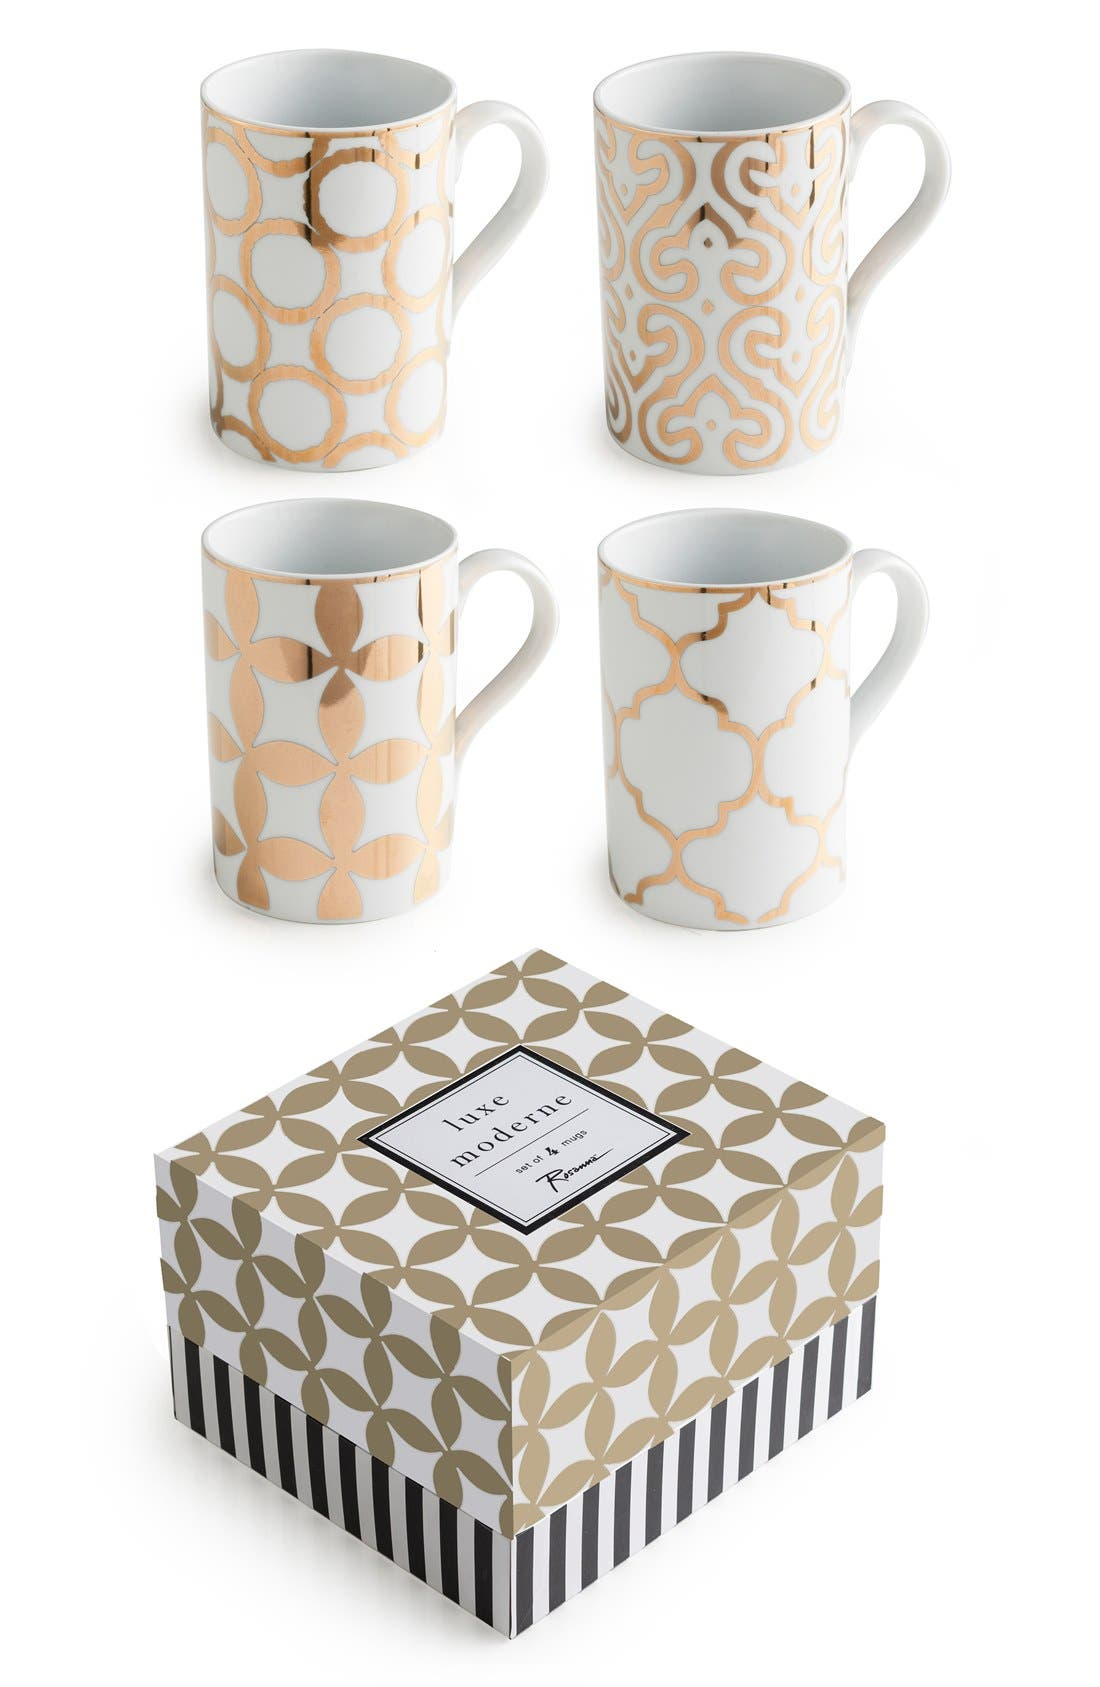 Rosanna 'Luxe Moderne' Coffee Mugs (Set of 4)